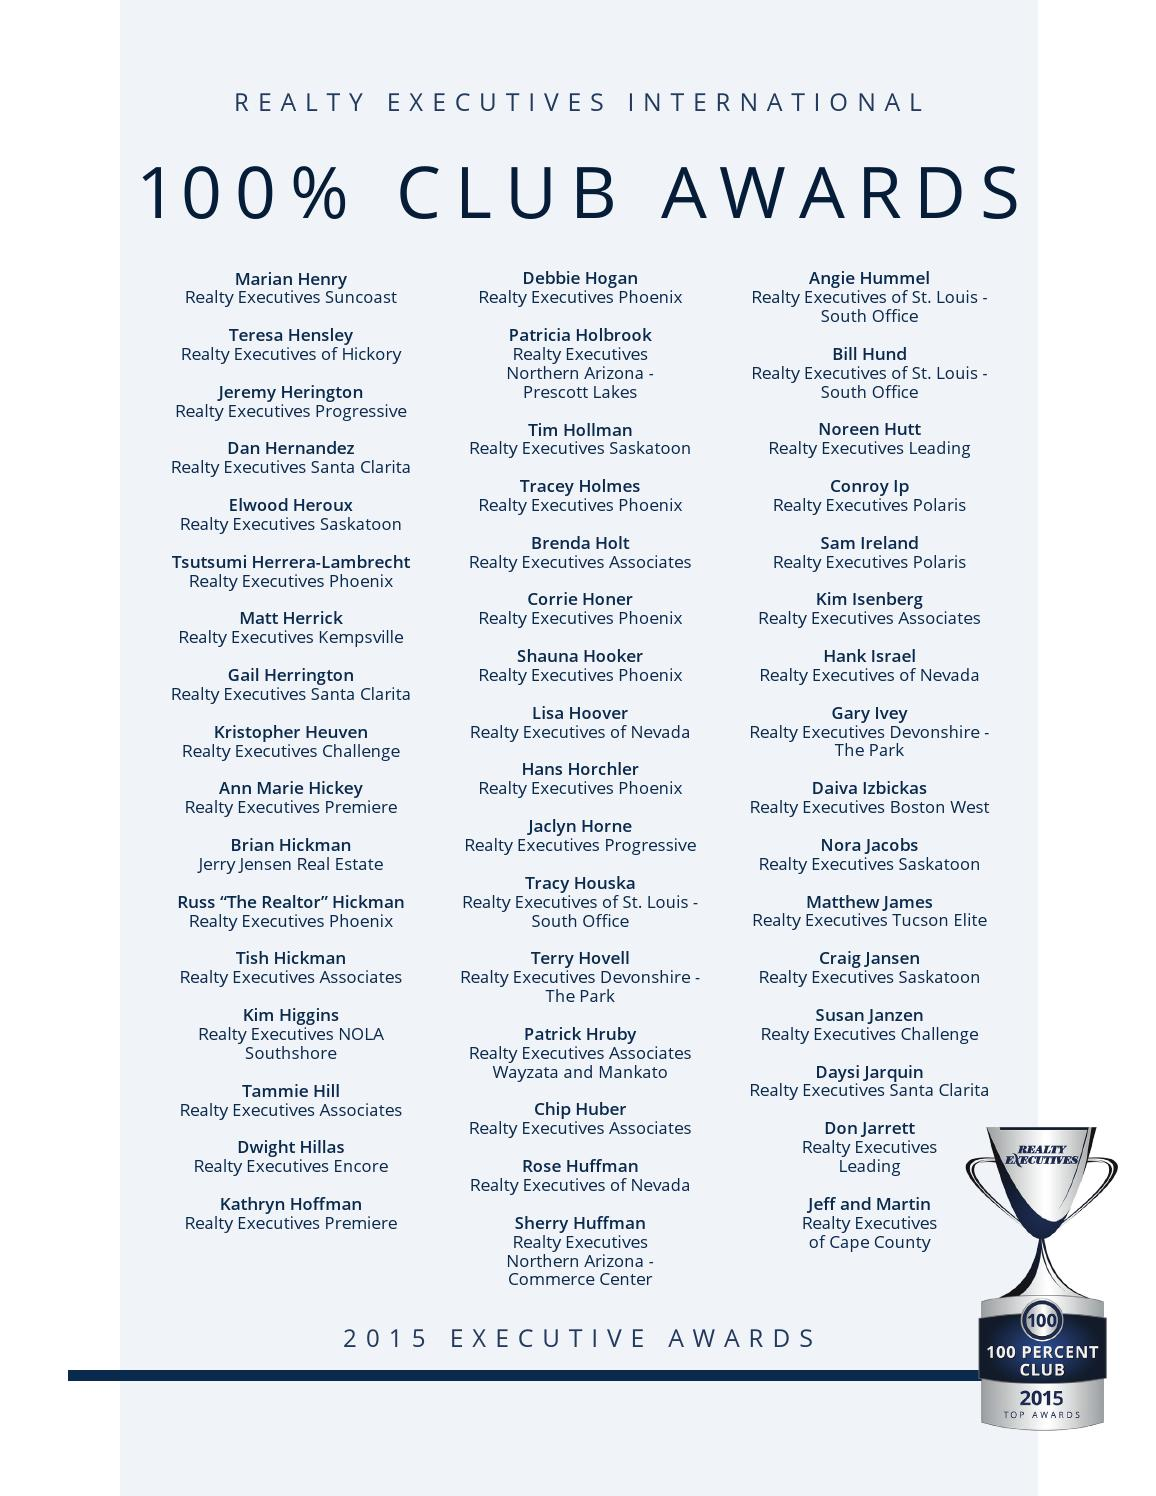 2017 Realty Executives Top Awards By International Issuu